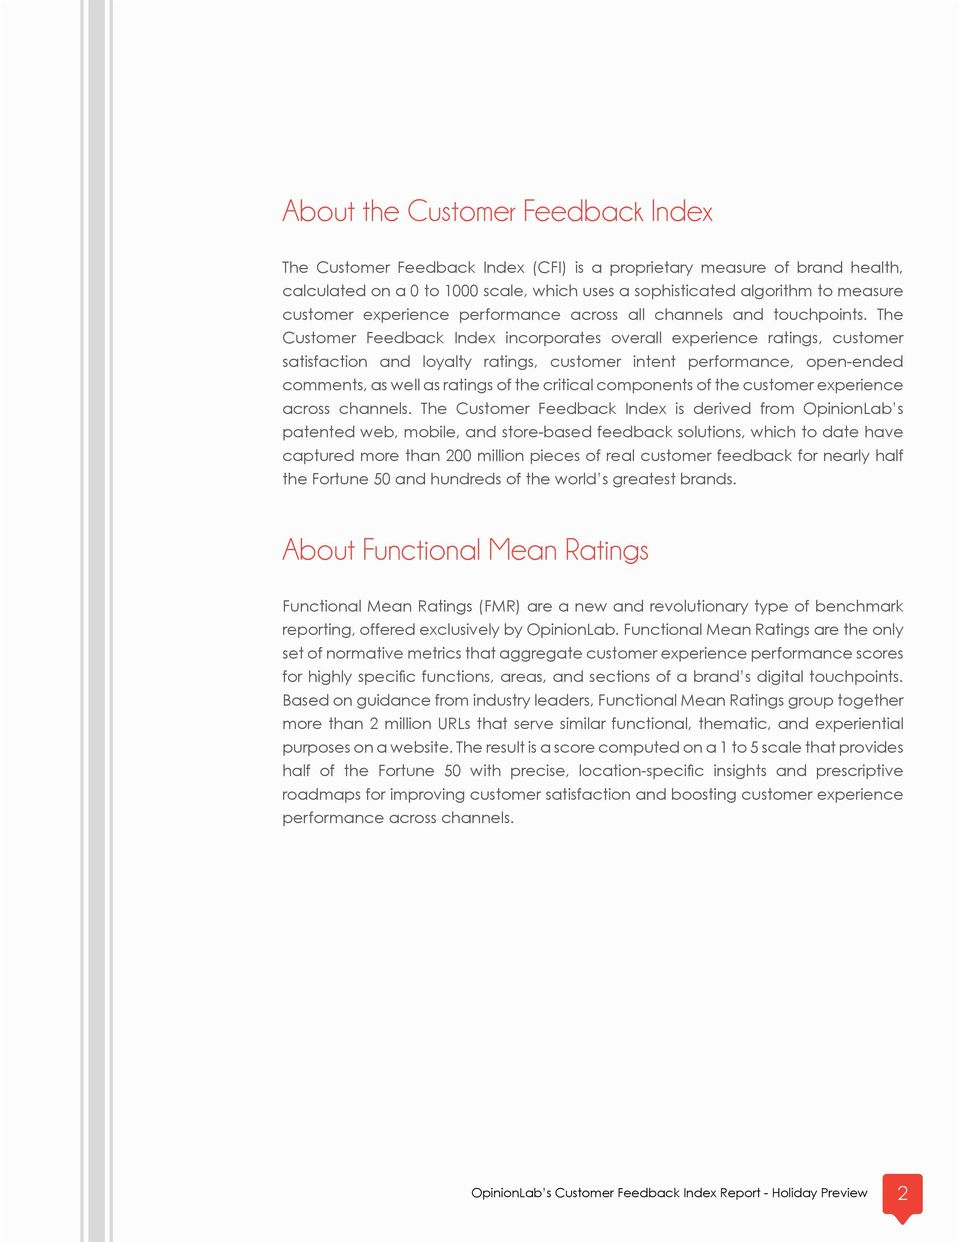 The Customer Feedback Index incorporates overall experience ratings, customer satisfaction and loyalty ratings, customer intent performance, open-ended comments, as well as ratings of the critical